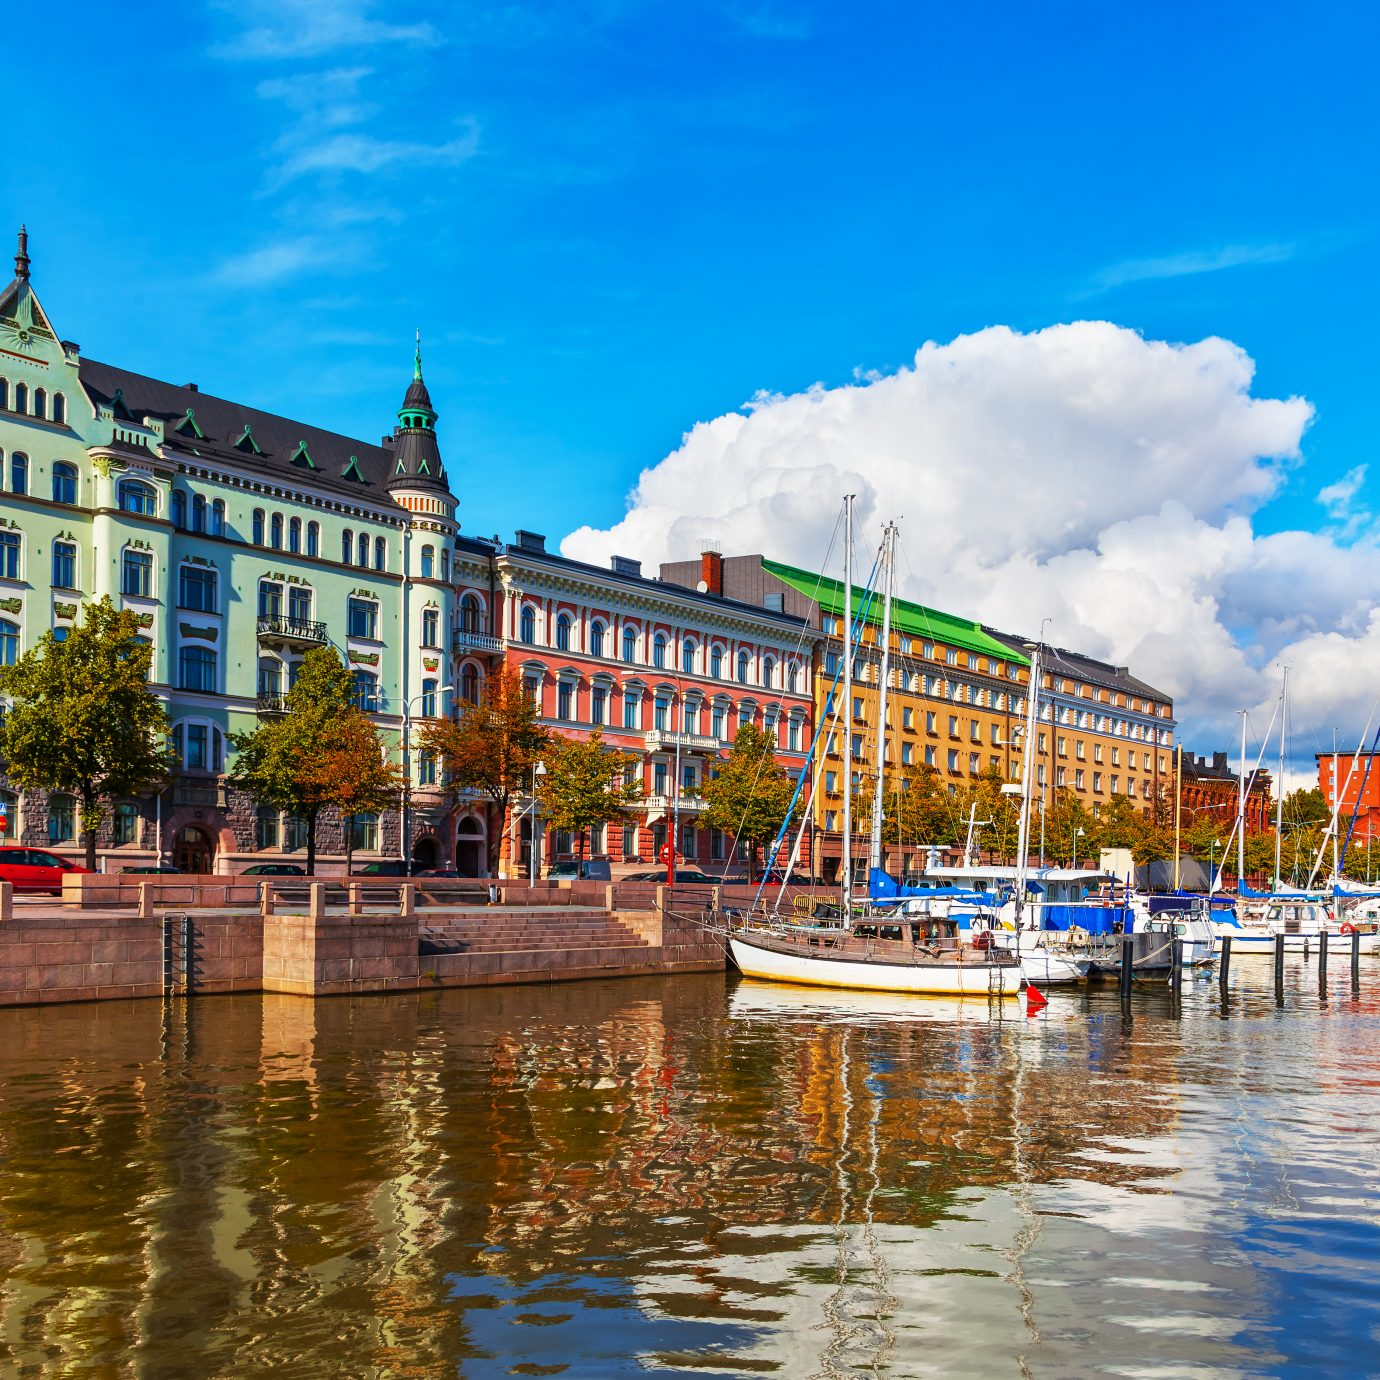 view of the Old Port pier in Helsinki, Finland